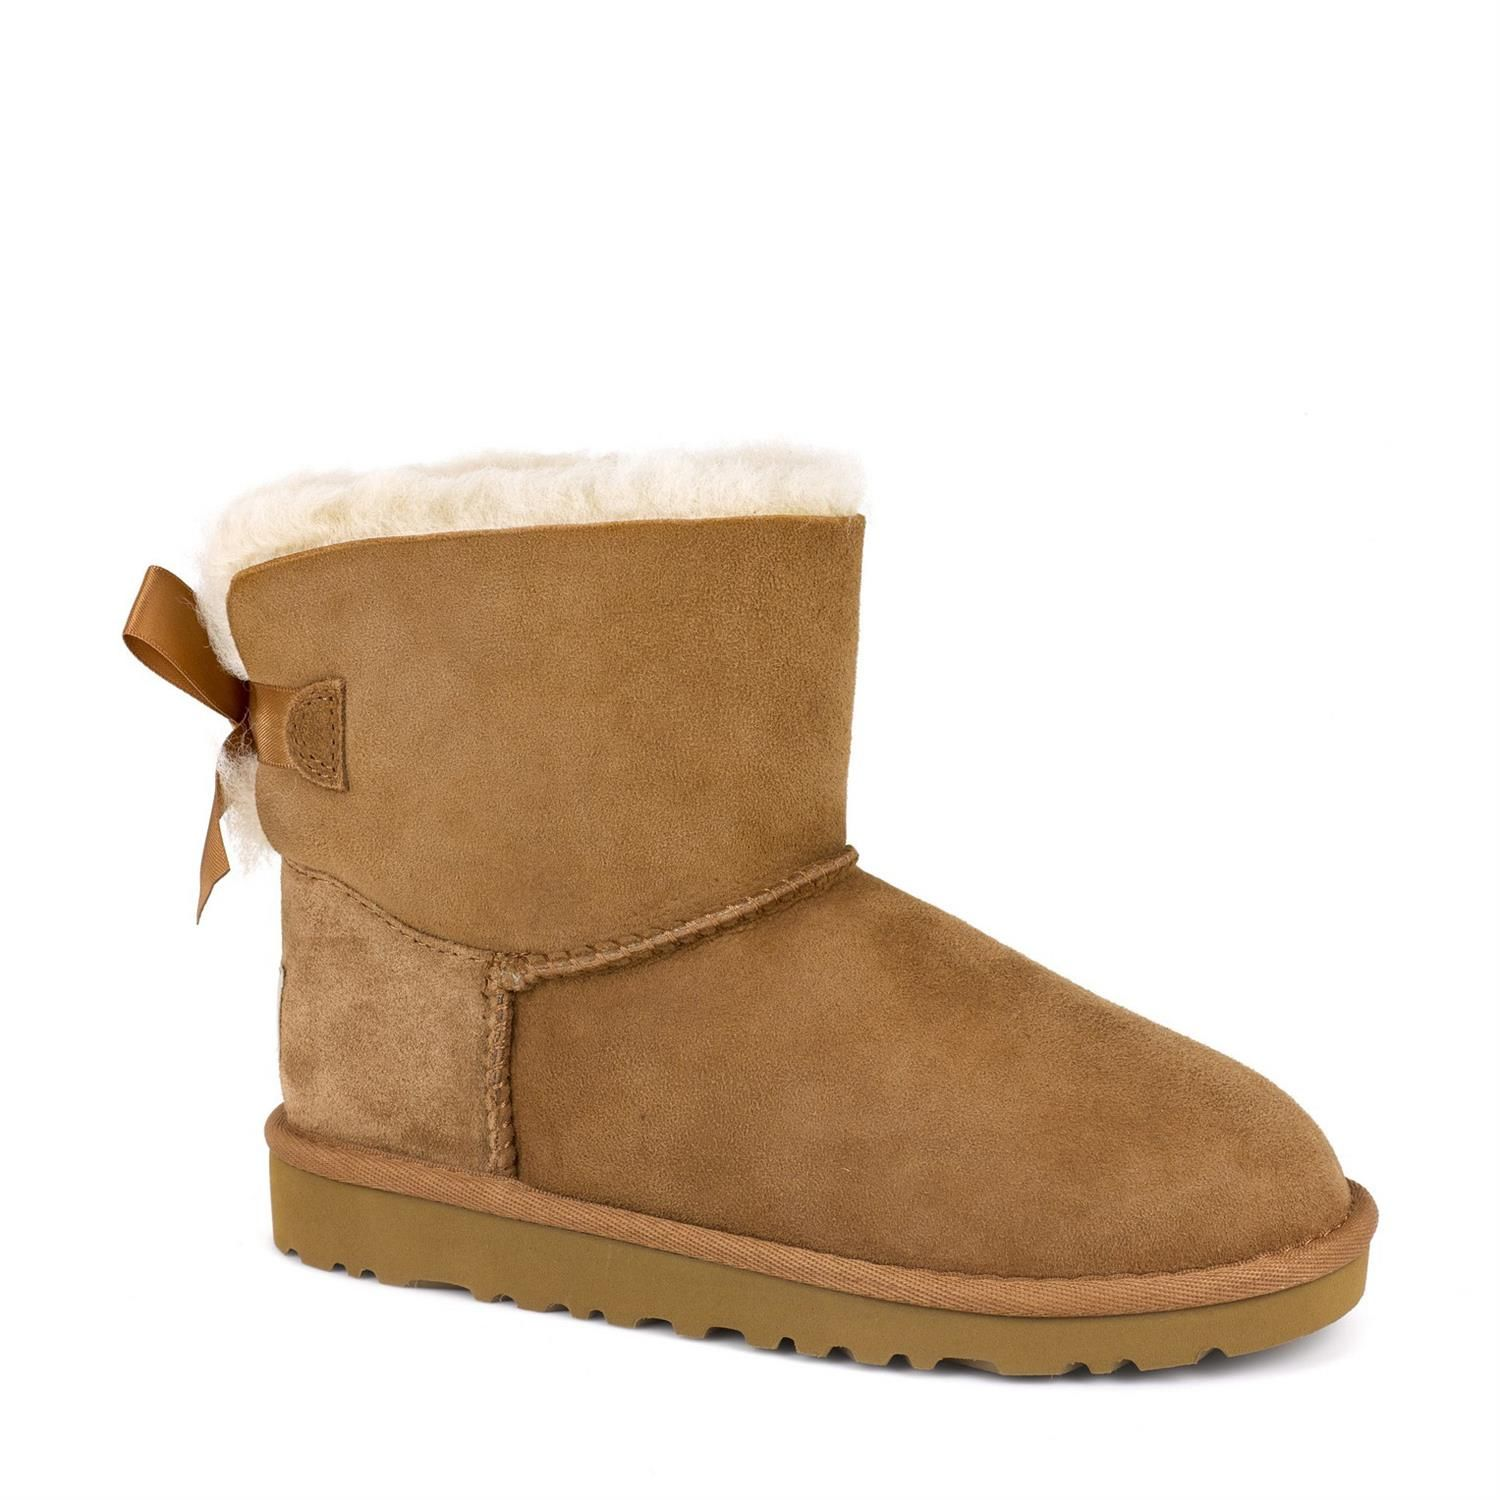 Toddlers' Mini Bailey Bow boot in chestnut by UGG Australia